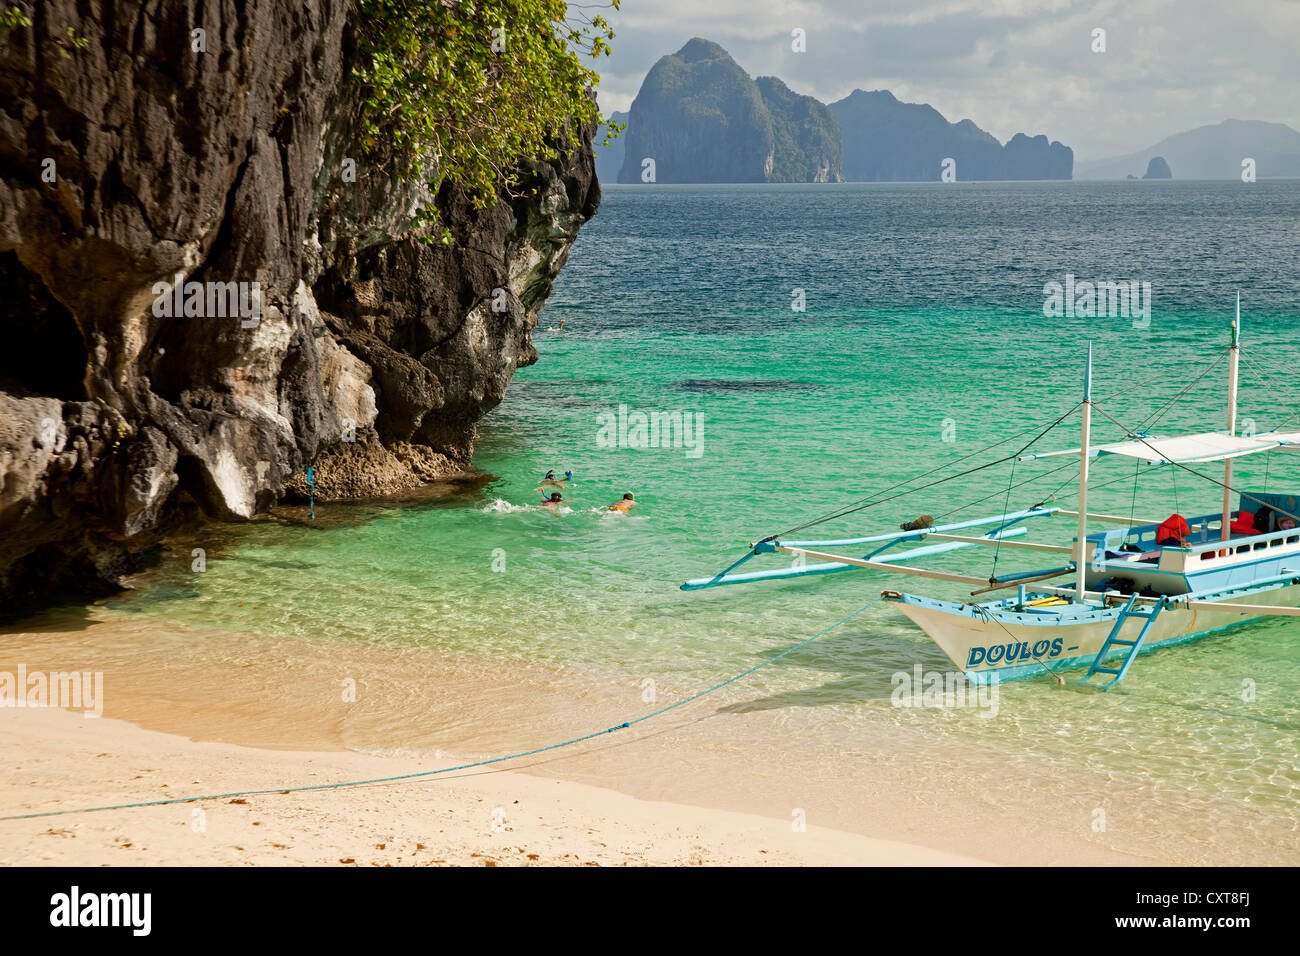 Snorkellers and a boat off Seven Commando Beach near El Nido, Palawan, Philippines, Asia - Stock Image